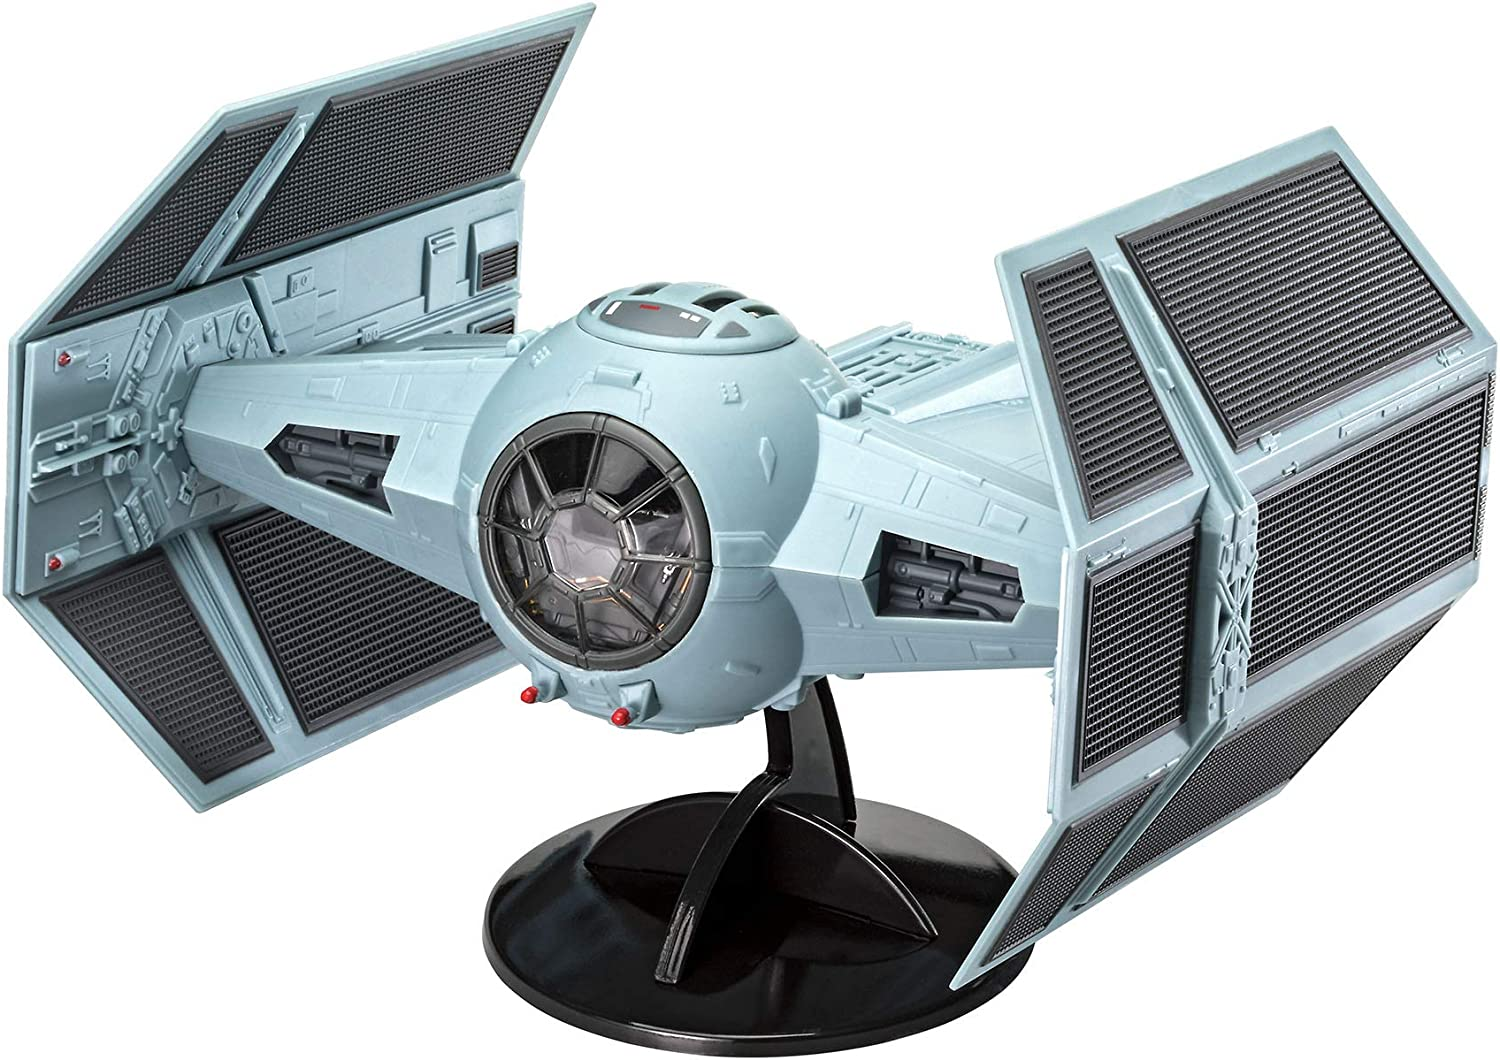 Revell Model Set 66780 Non laqu/é Model Set Darth Vaders TIE Figh Star Wars Maquette